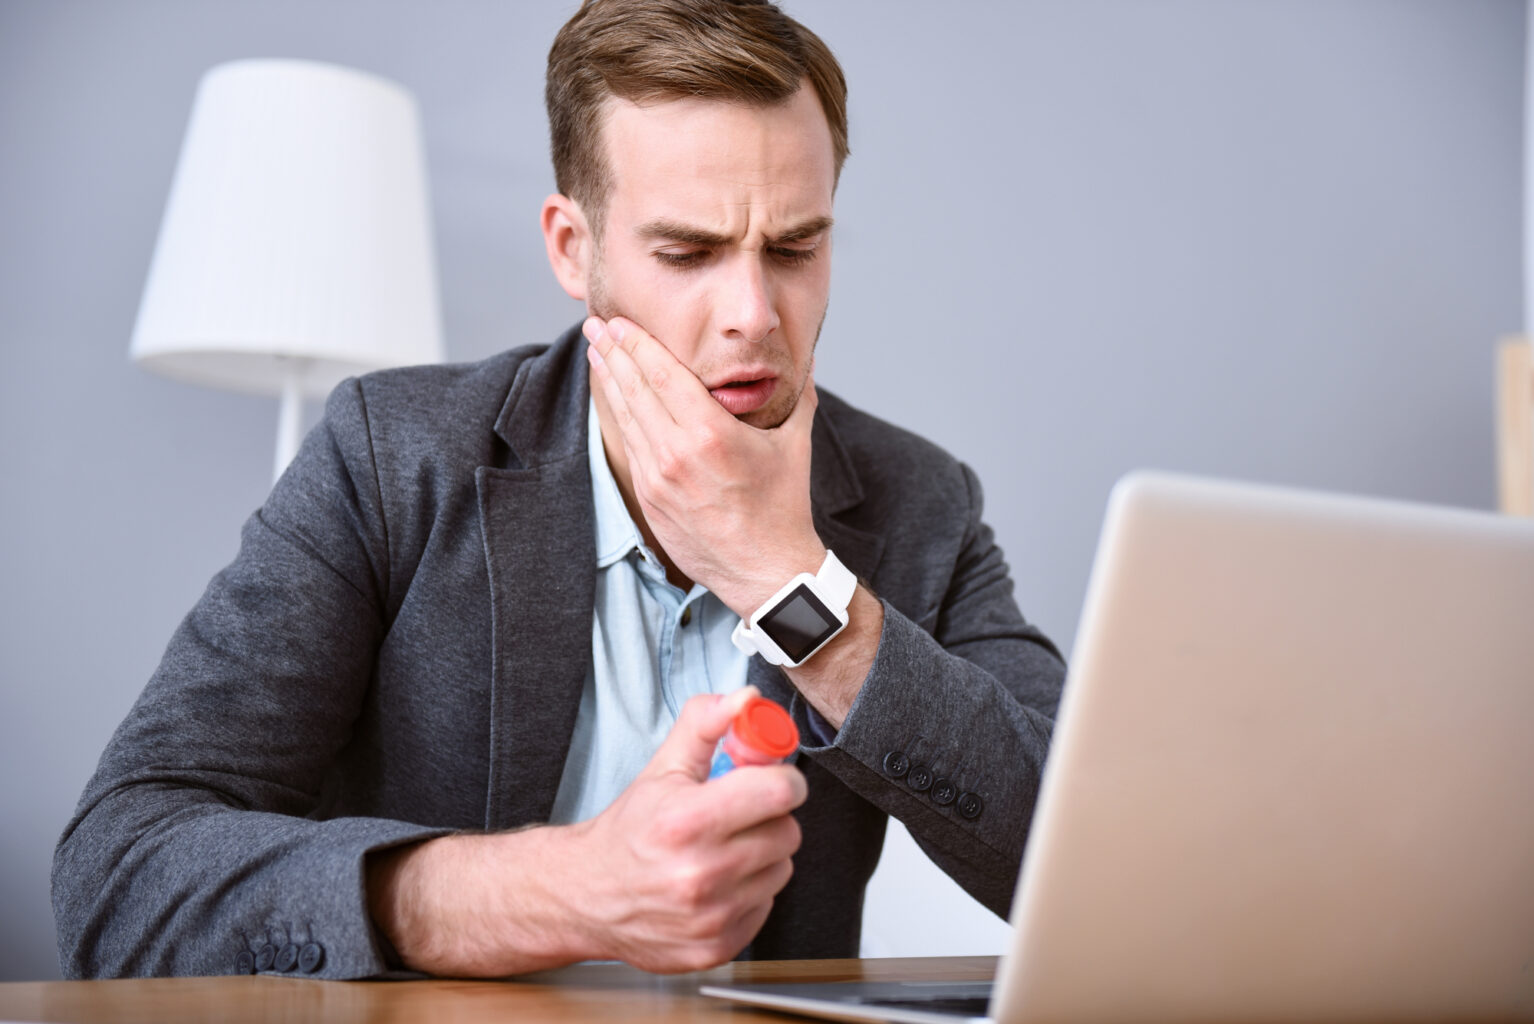 Did you know? TMJ pain can be caused by a poorly aligned bite.